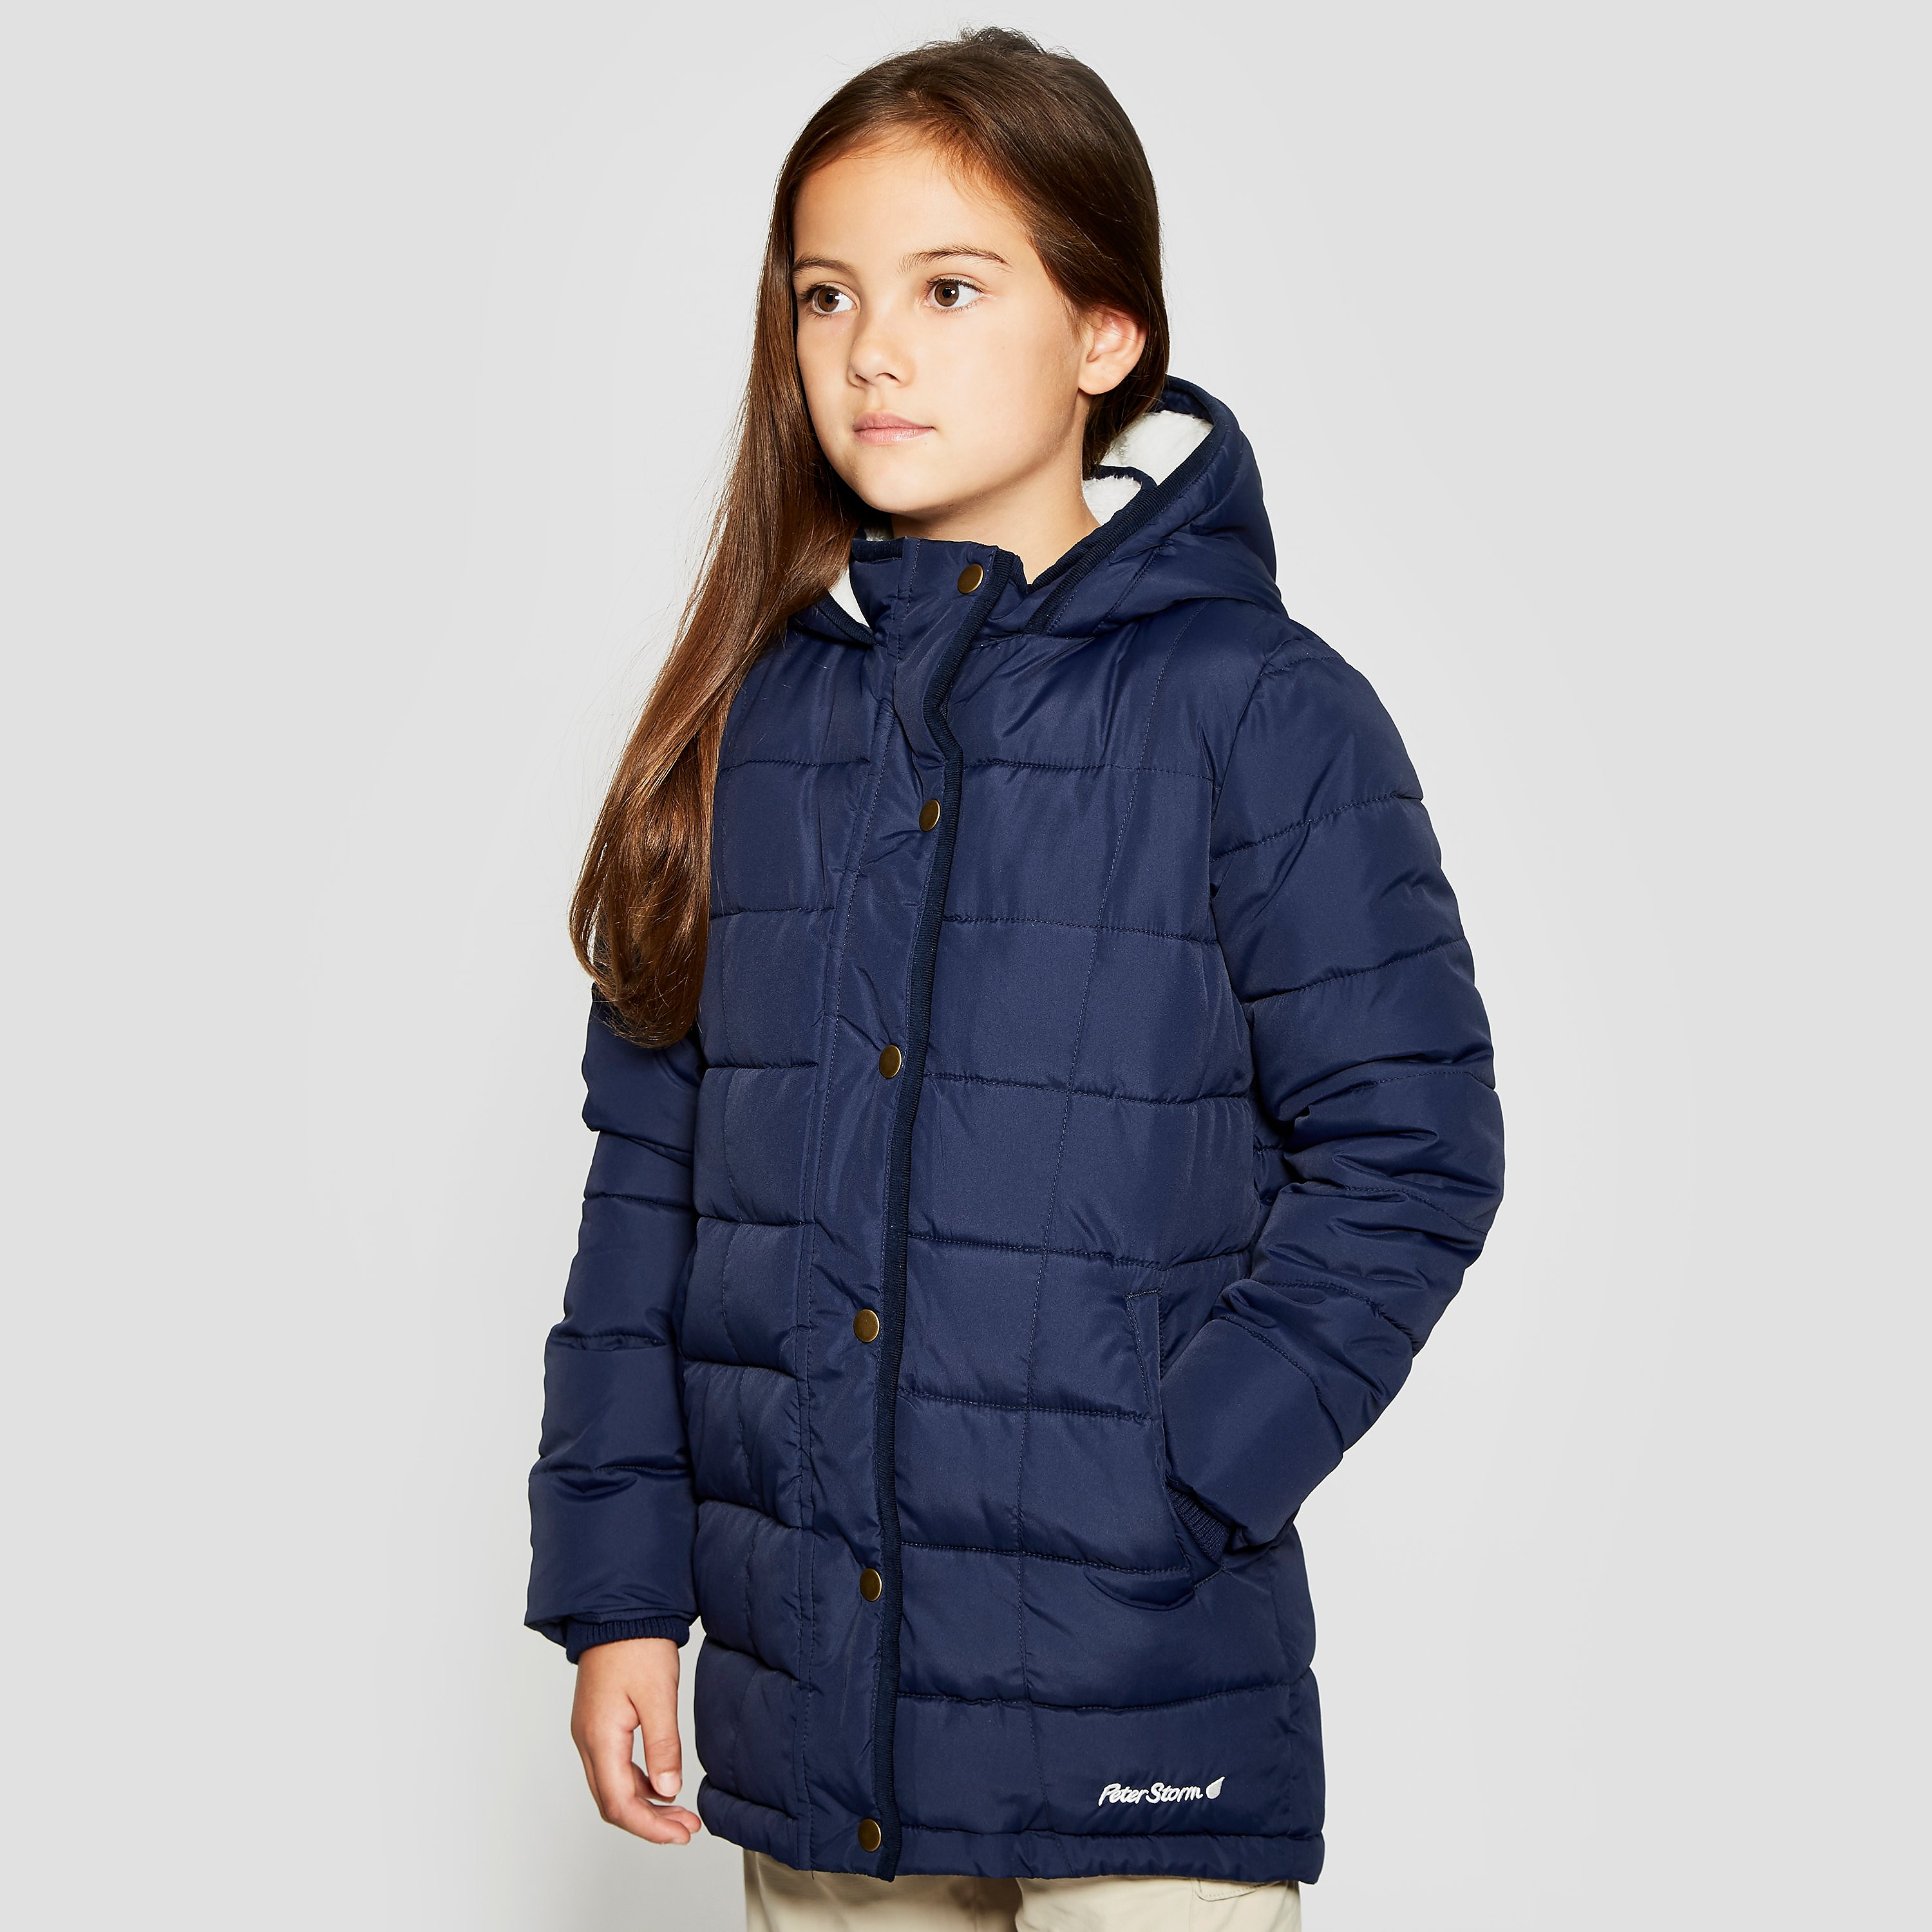 Peter Storm Girls' Katie Long Insulated Jacket